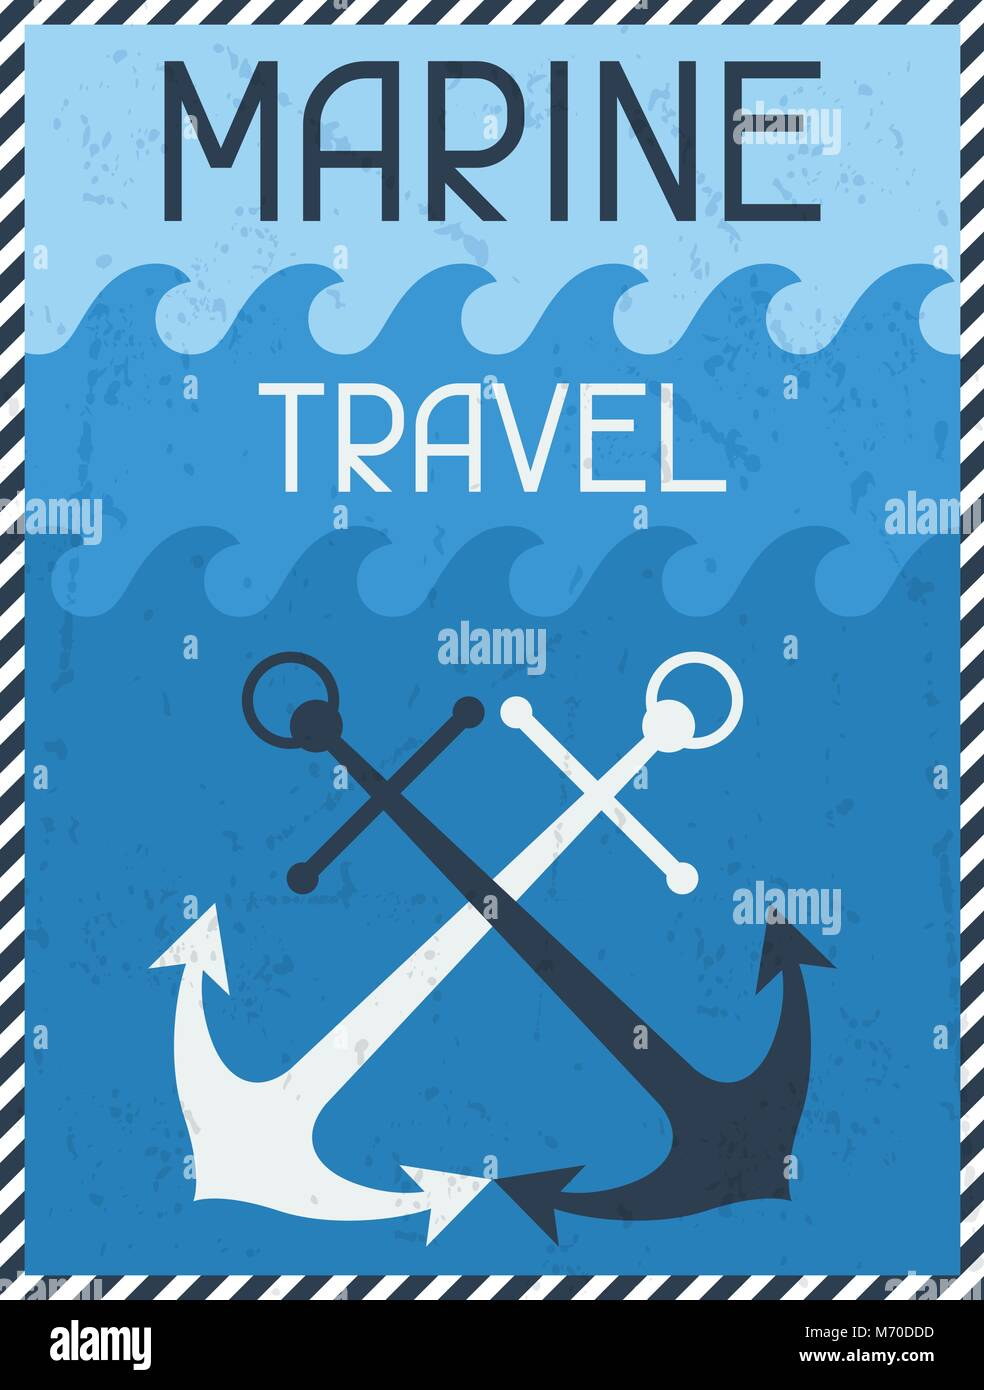 Marine Travel. Nautical retro poster in flat design style - Stock Image